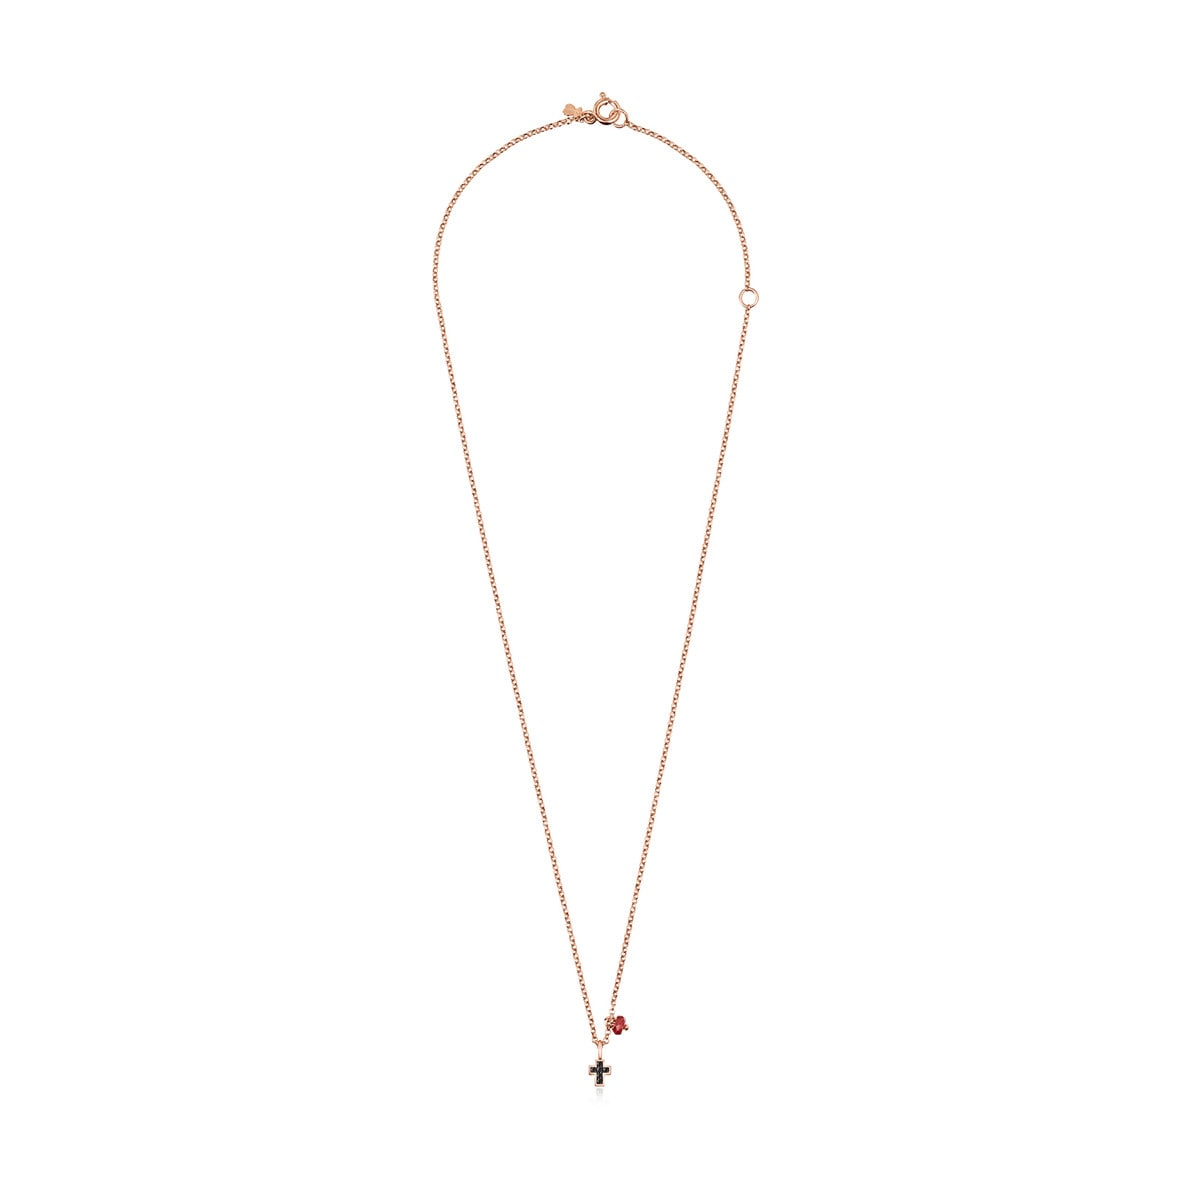 Rose Gold Vermeil Motif cross Necklace with Spinels and Ruby